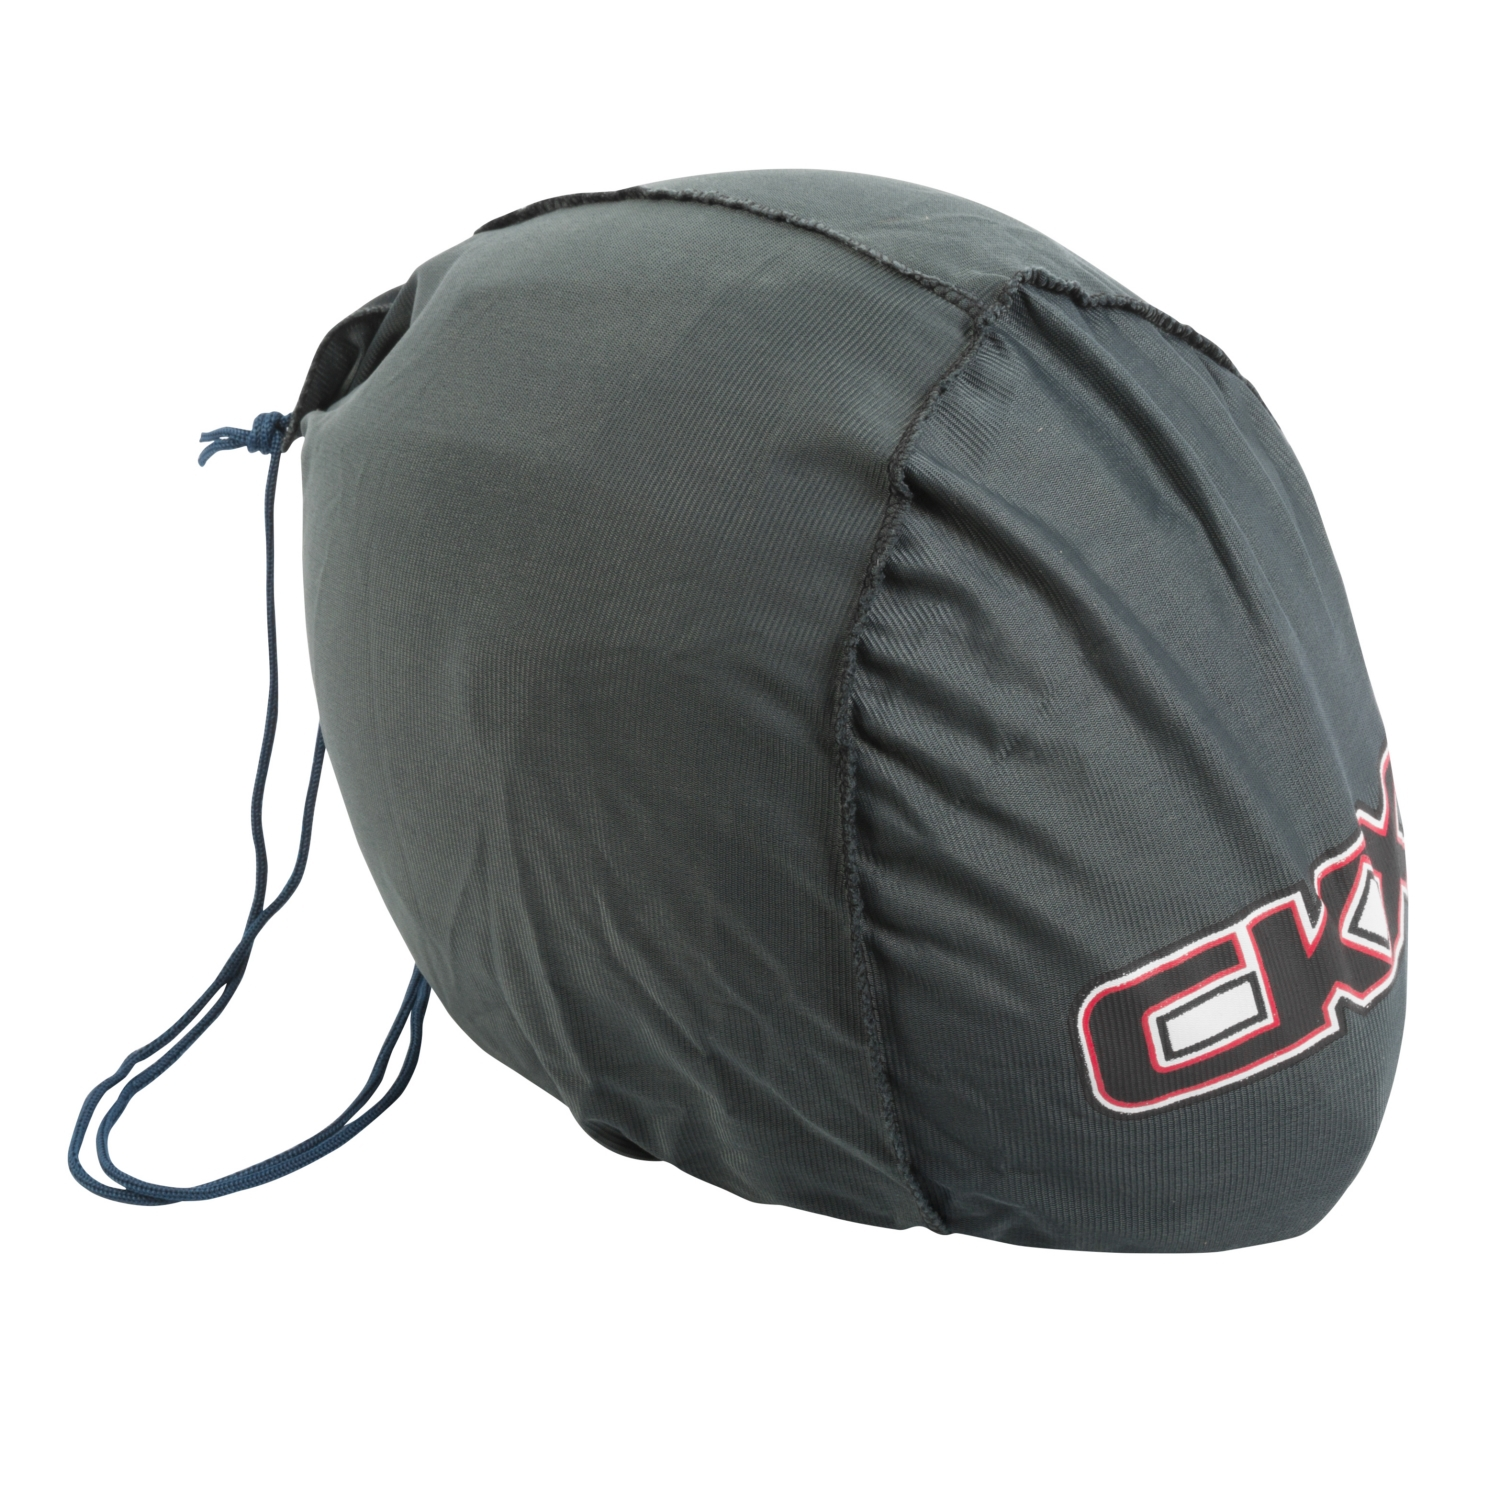 CKX Polyester Helmet Bag Black Black One Size Fits All #096207